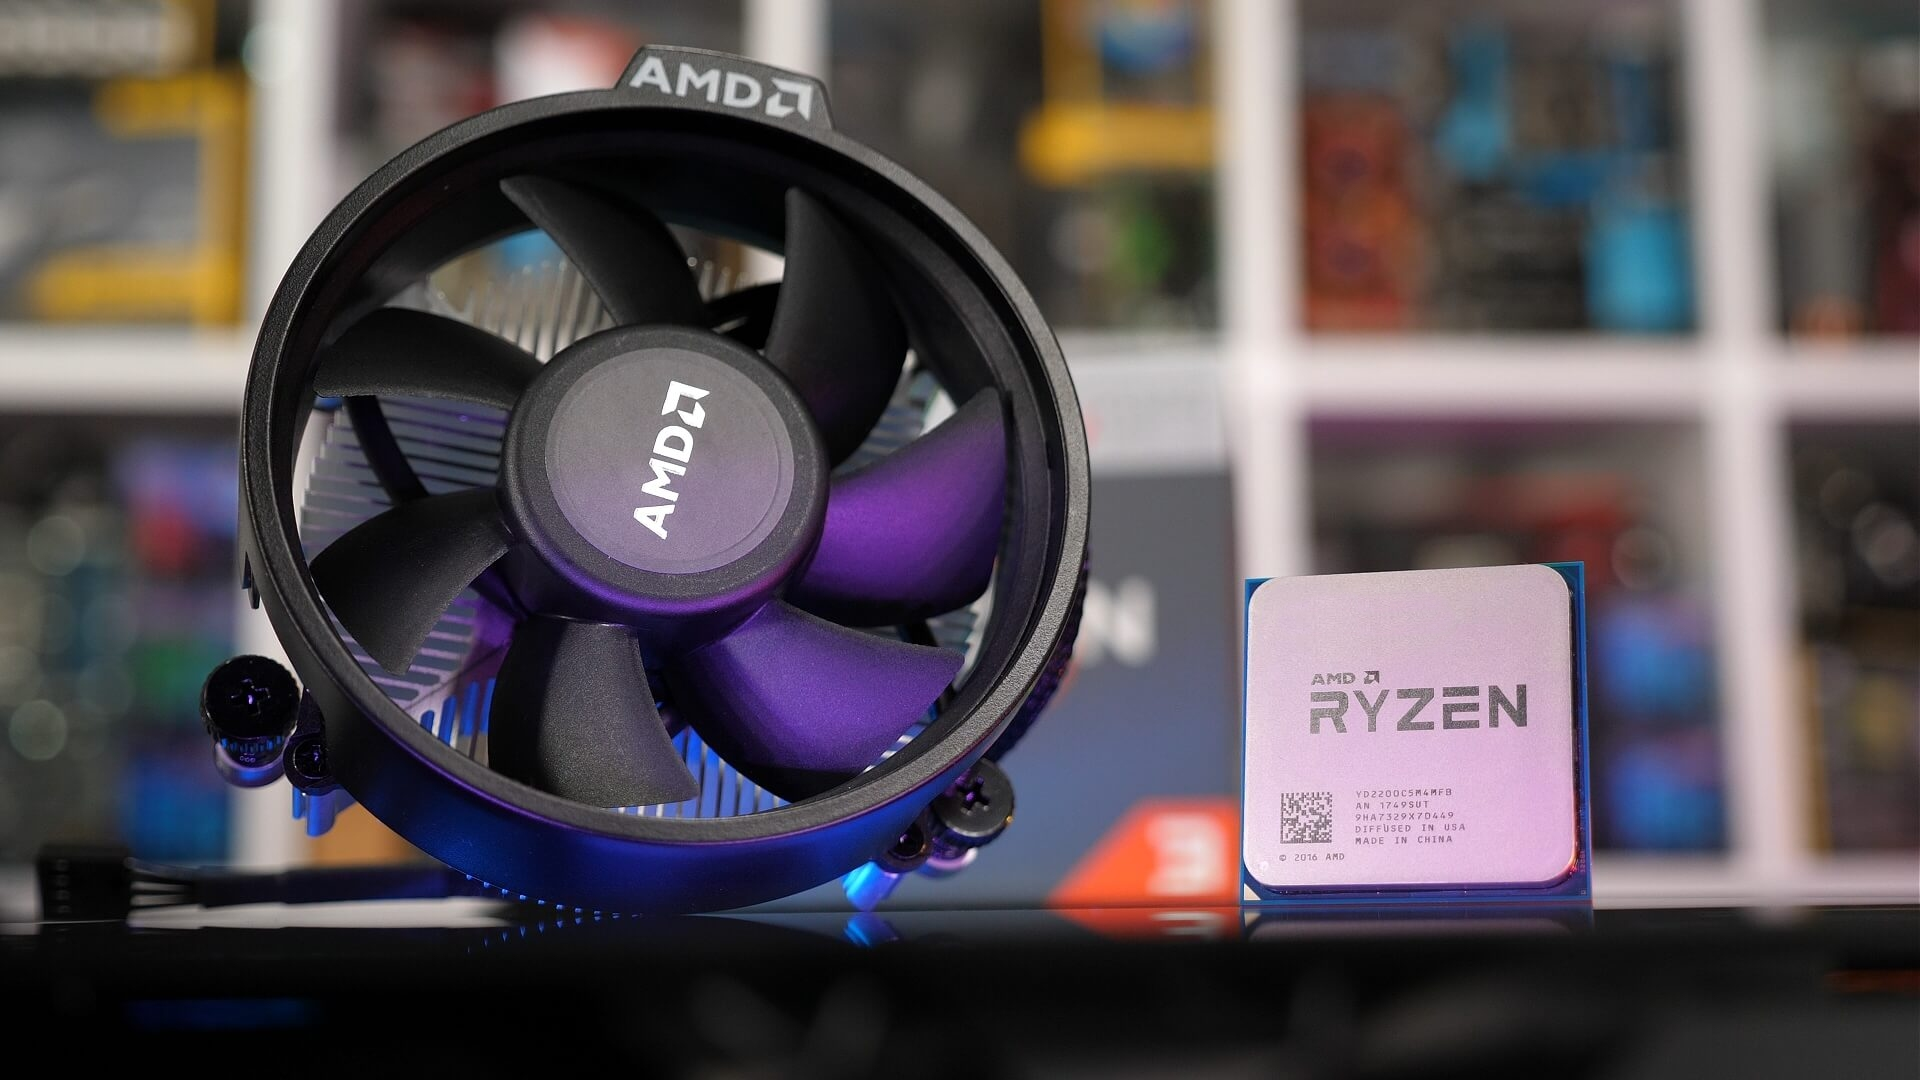 June Steam hardware survey: AMD losing CPU share to Intel, Windows 10 cements top OS spot